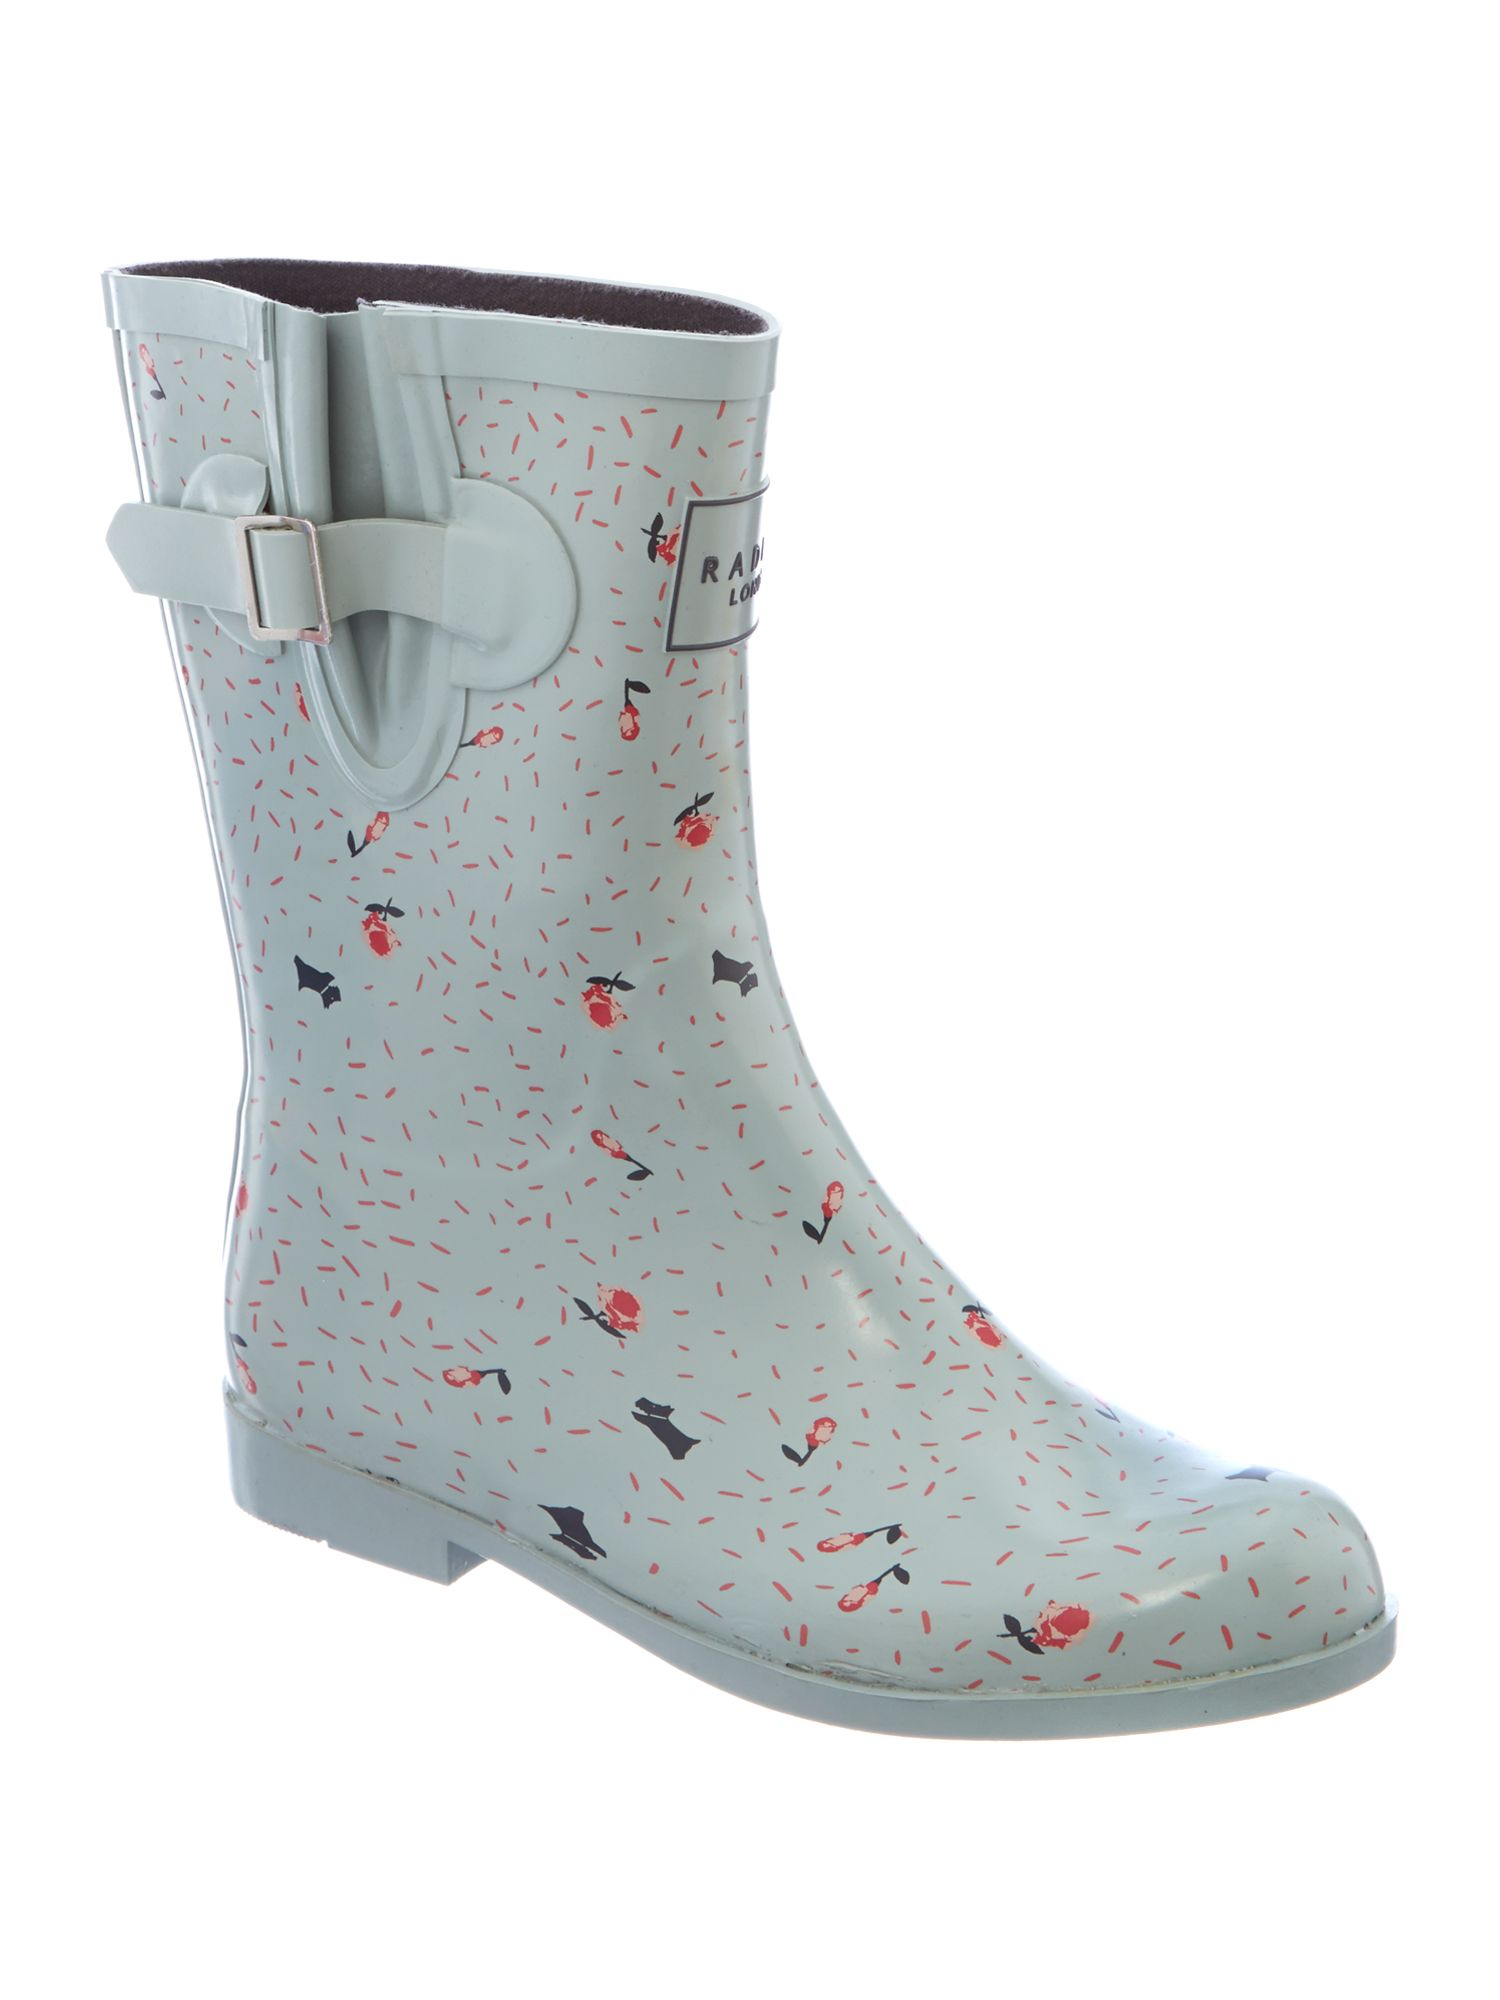 Emerson short welly